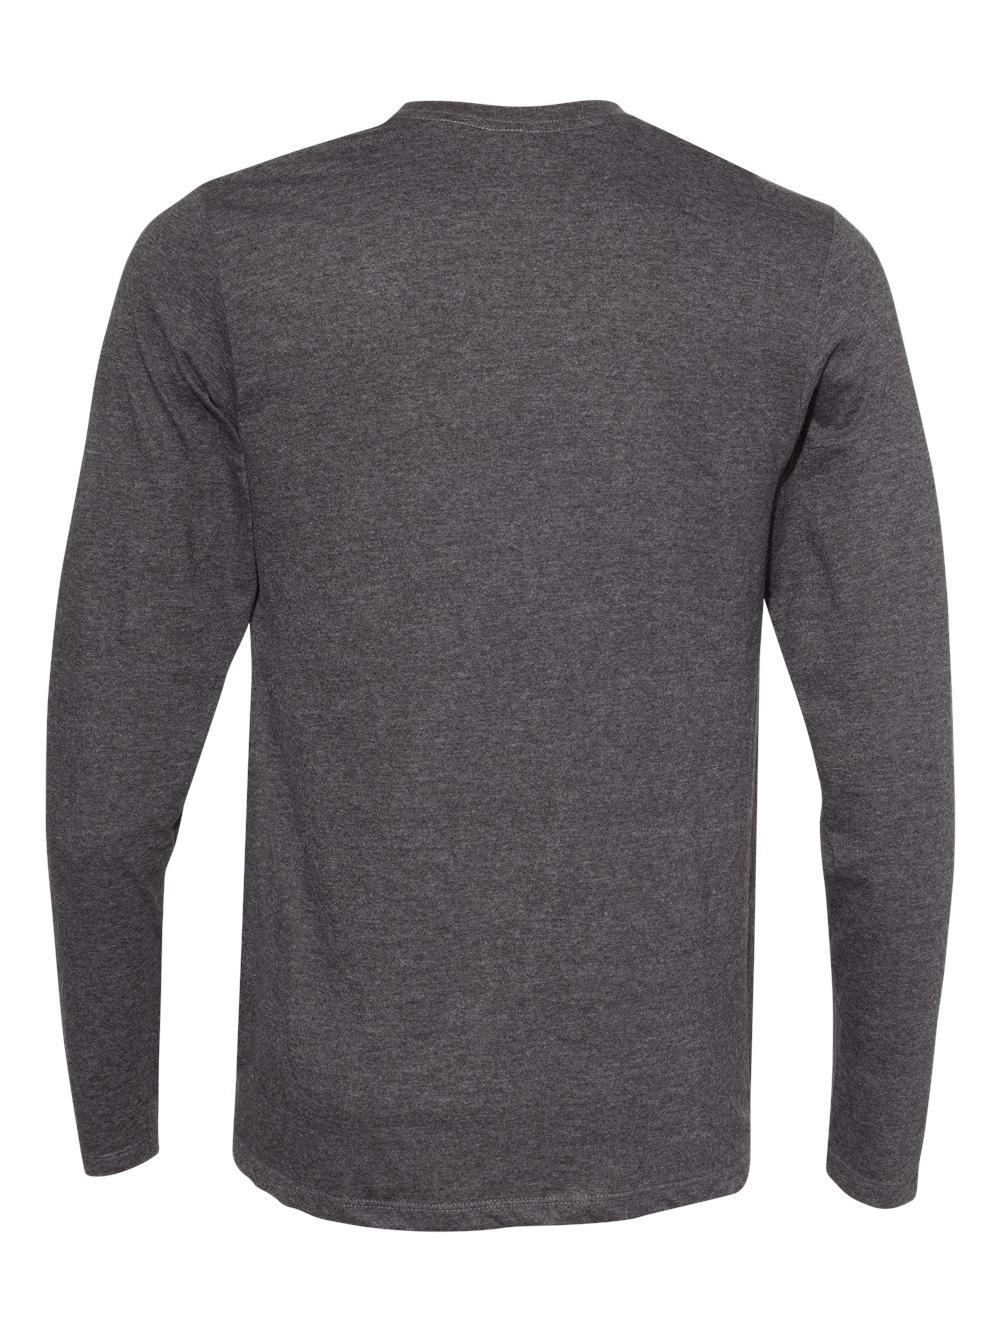 ALSTYLE-Ultimate-Long-Sleeve-T-Shirt-5304 thumbnail 11